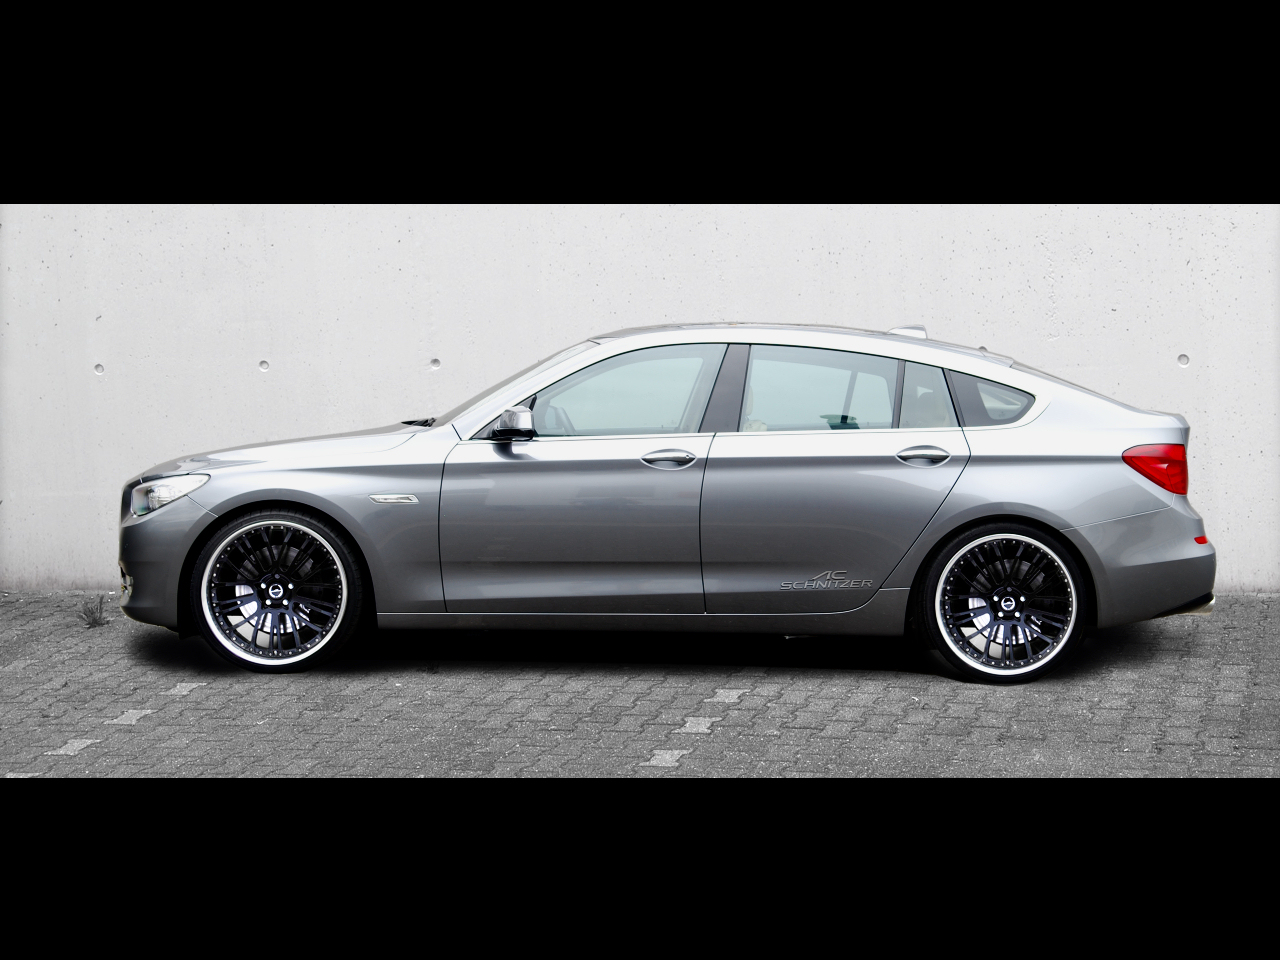 BMW 5-Series GT With AC Schnitzer Wheels